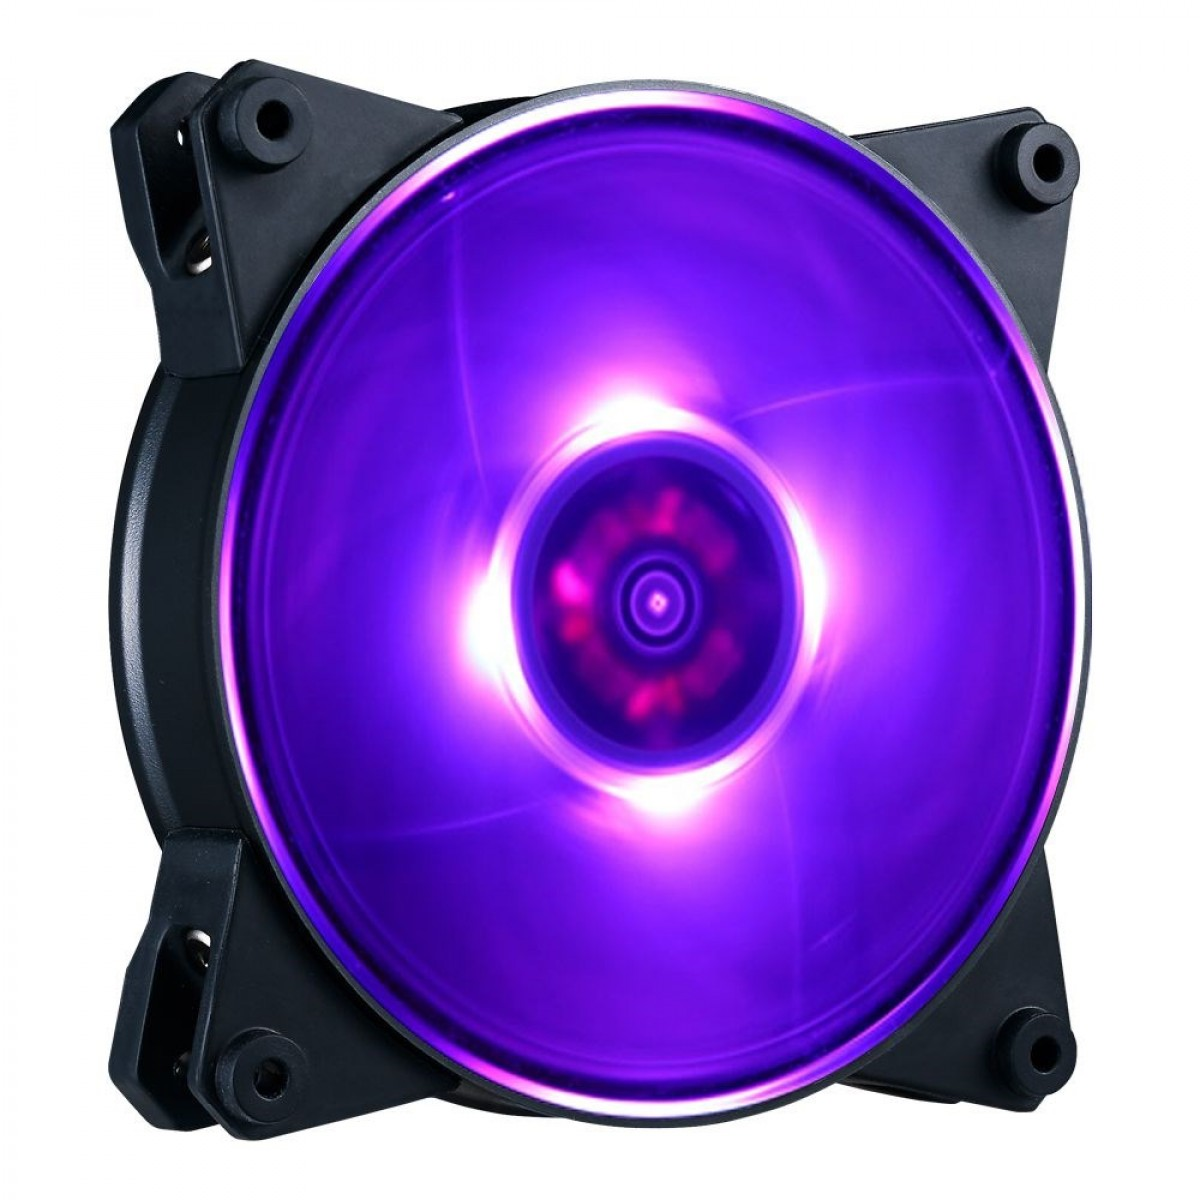 Cooler Master MasterFan Pro 120 Air Flow RGB Fan